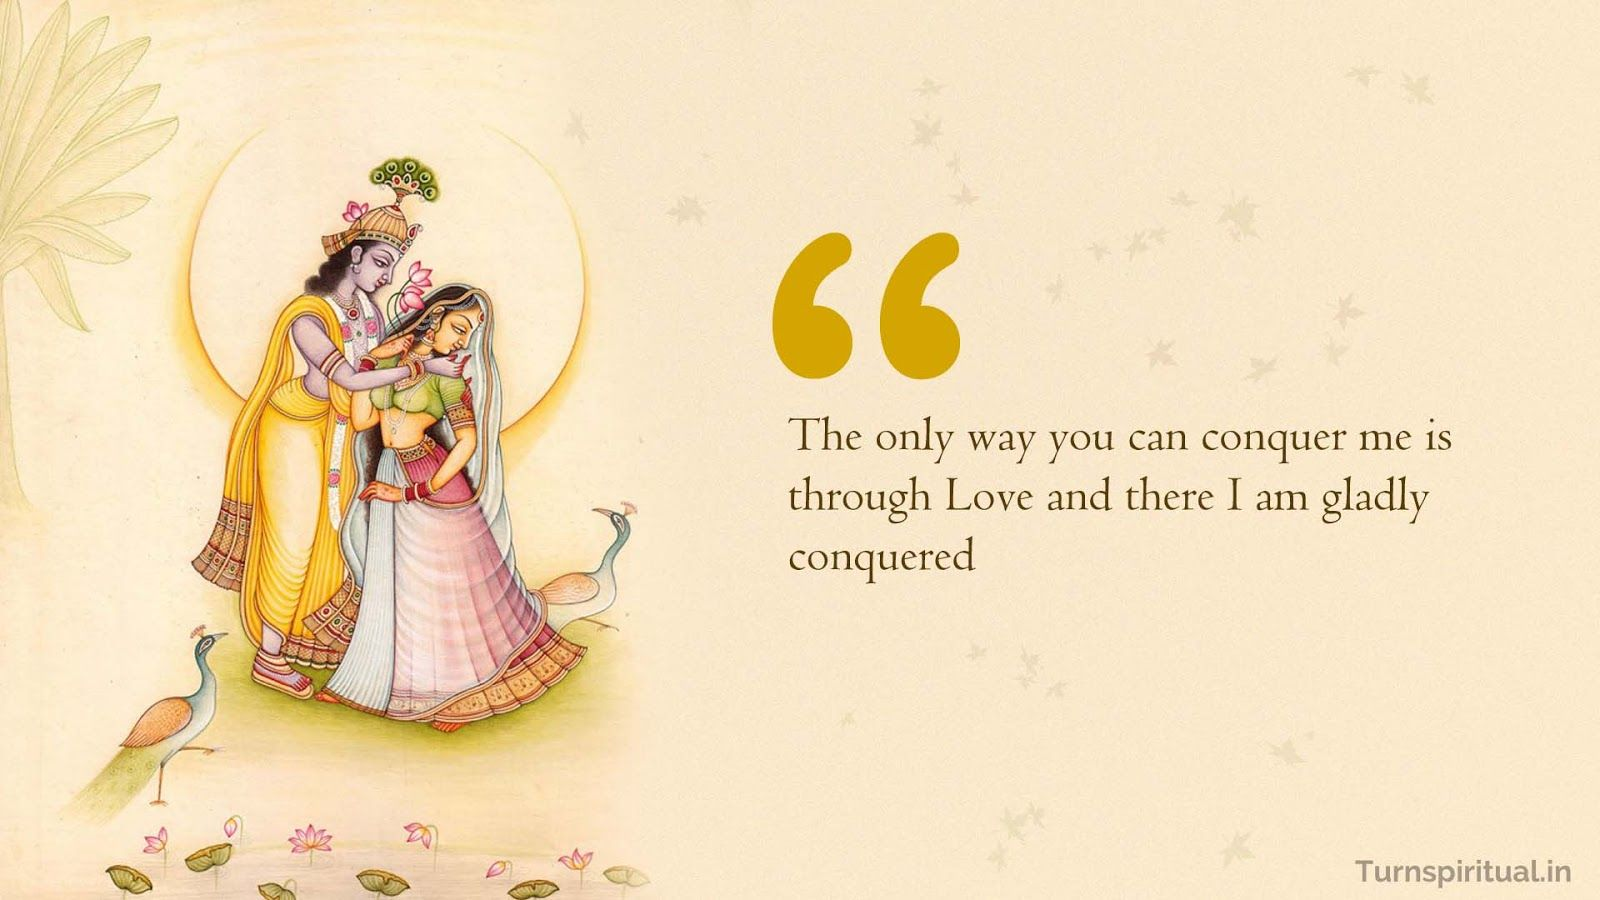 Pin By Dreamer On Quotes In 2019 Krishna Painting Krishna Lord